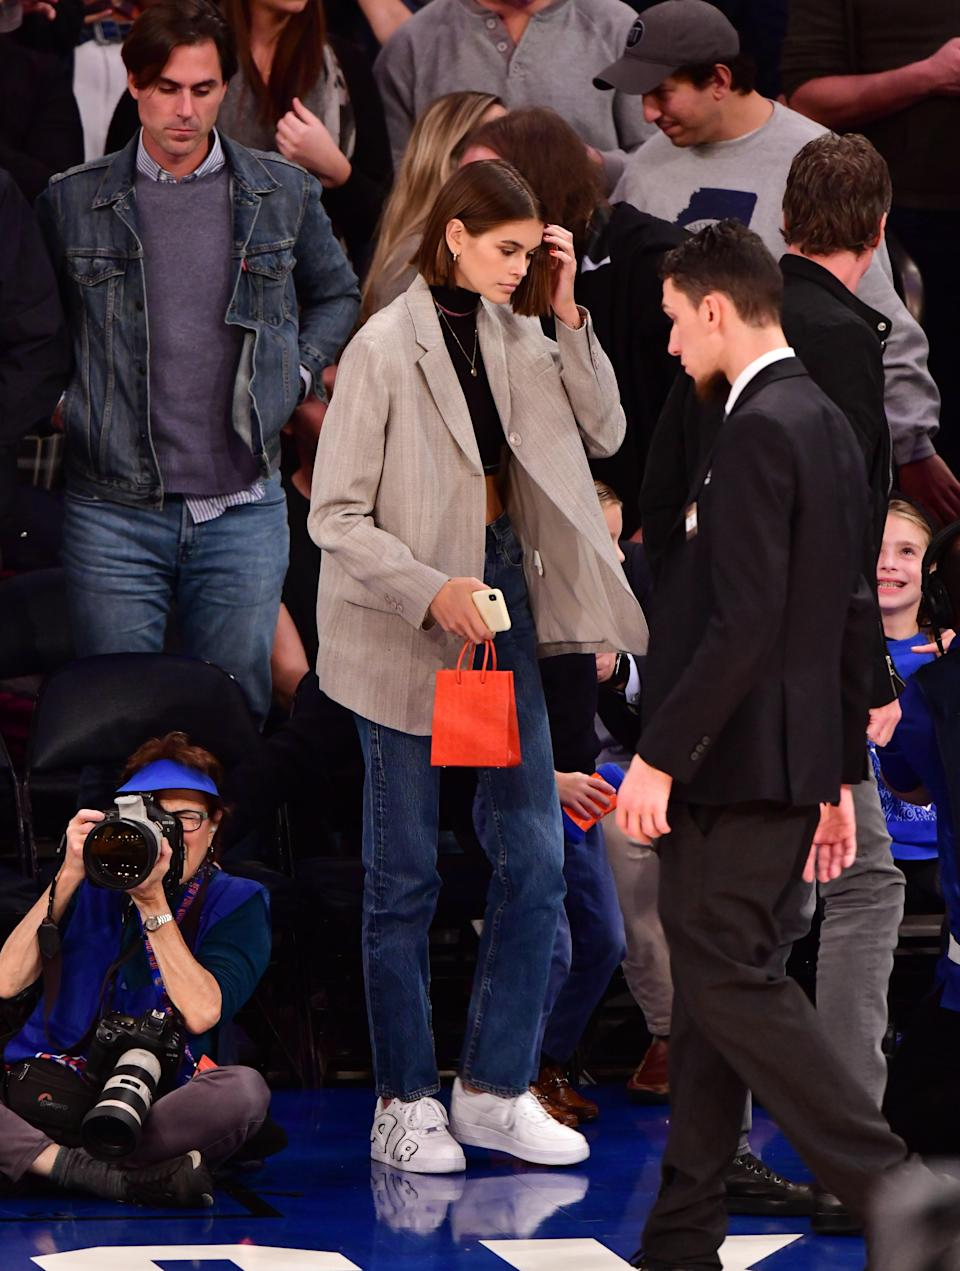 For a Bulls vs. Knicks game, Kaia appeared courtside clad in some Nike Air Force 1 Uptempo hybrids.